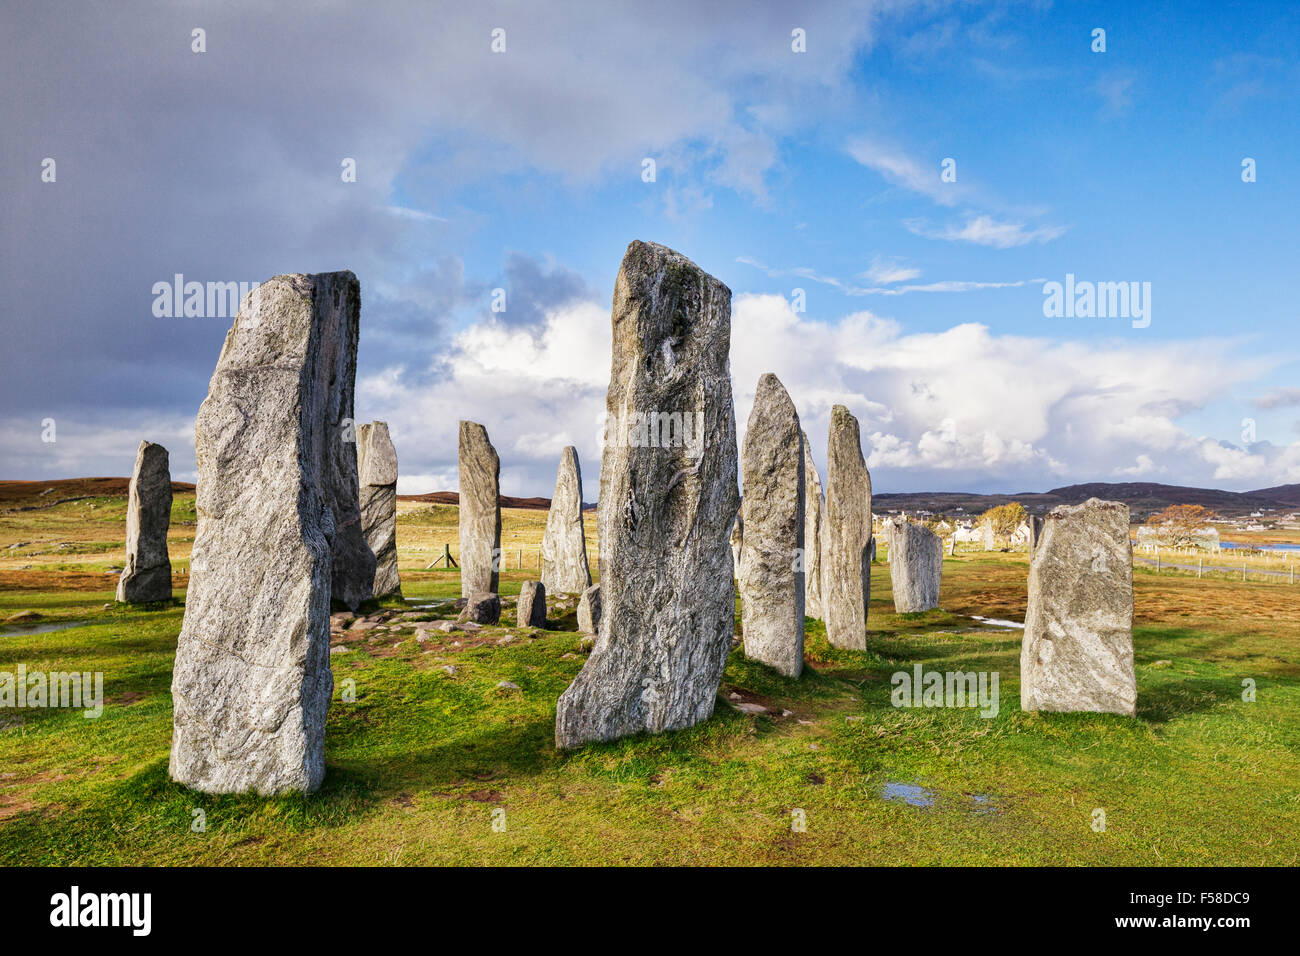 Stone circle at Callanish, Isle of Lewis, Western Isles, Outer Hebrides, Scotland, UK Stock Photo